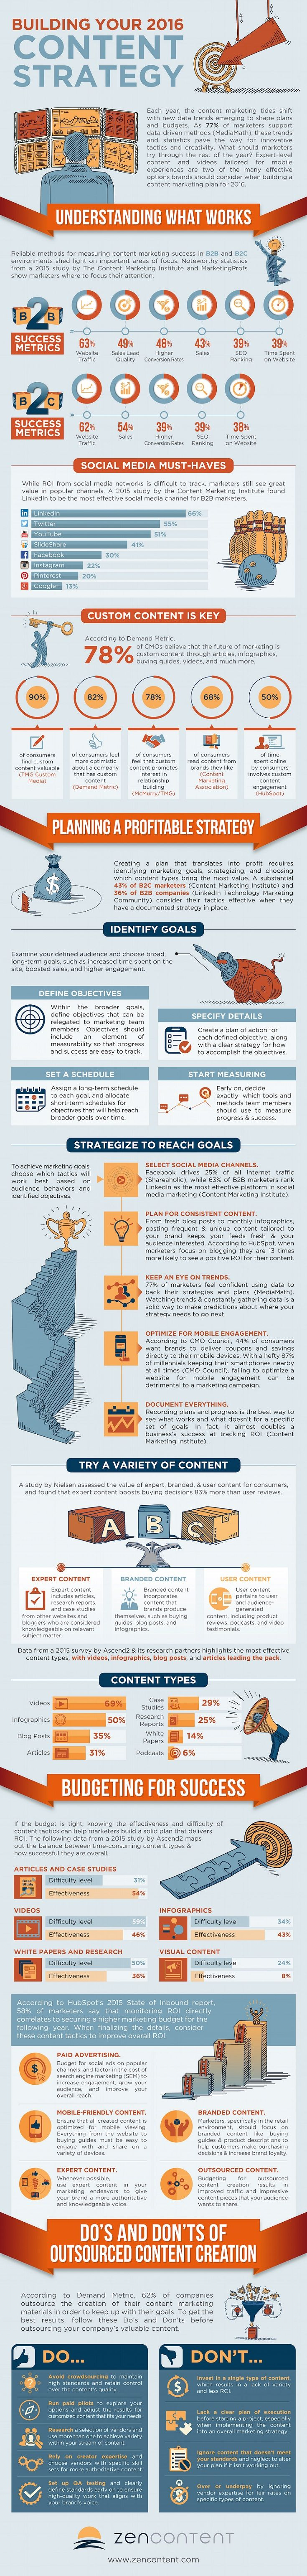 Building Your 2016 Content Strategy [Infographic] | Social Media Today